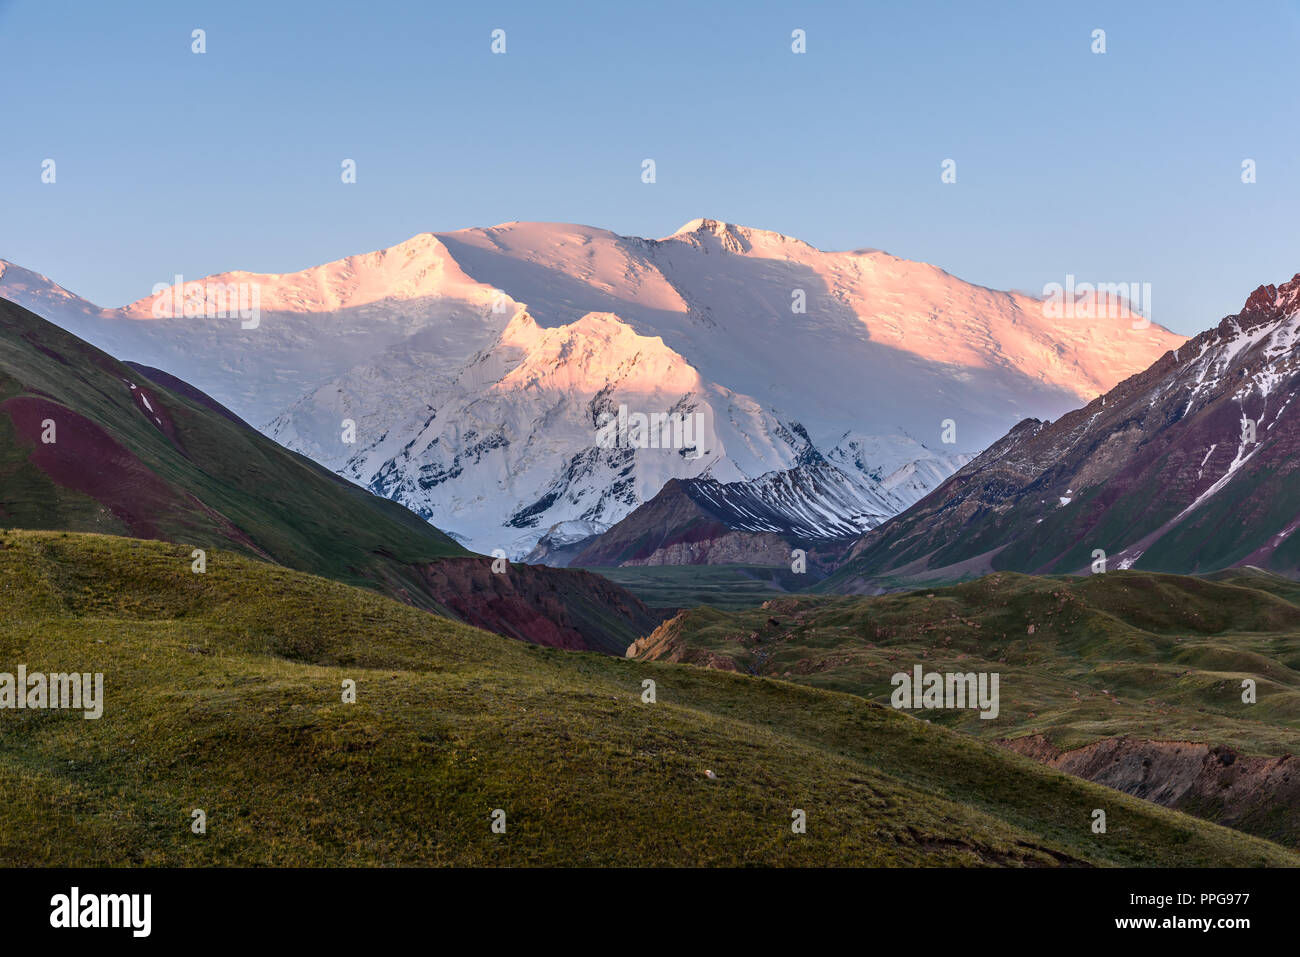 sunrise over Peak Lenin, Kyrgyzstan Stock Photo